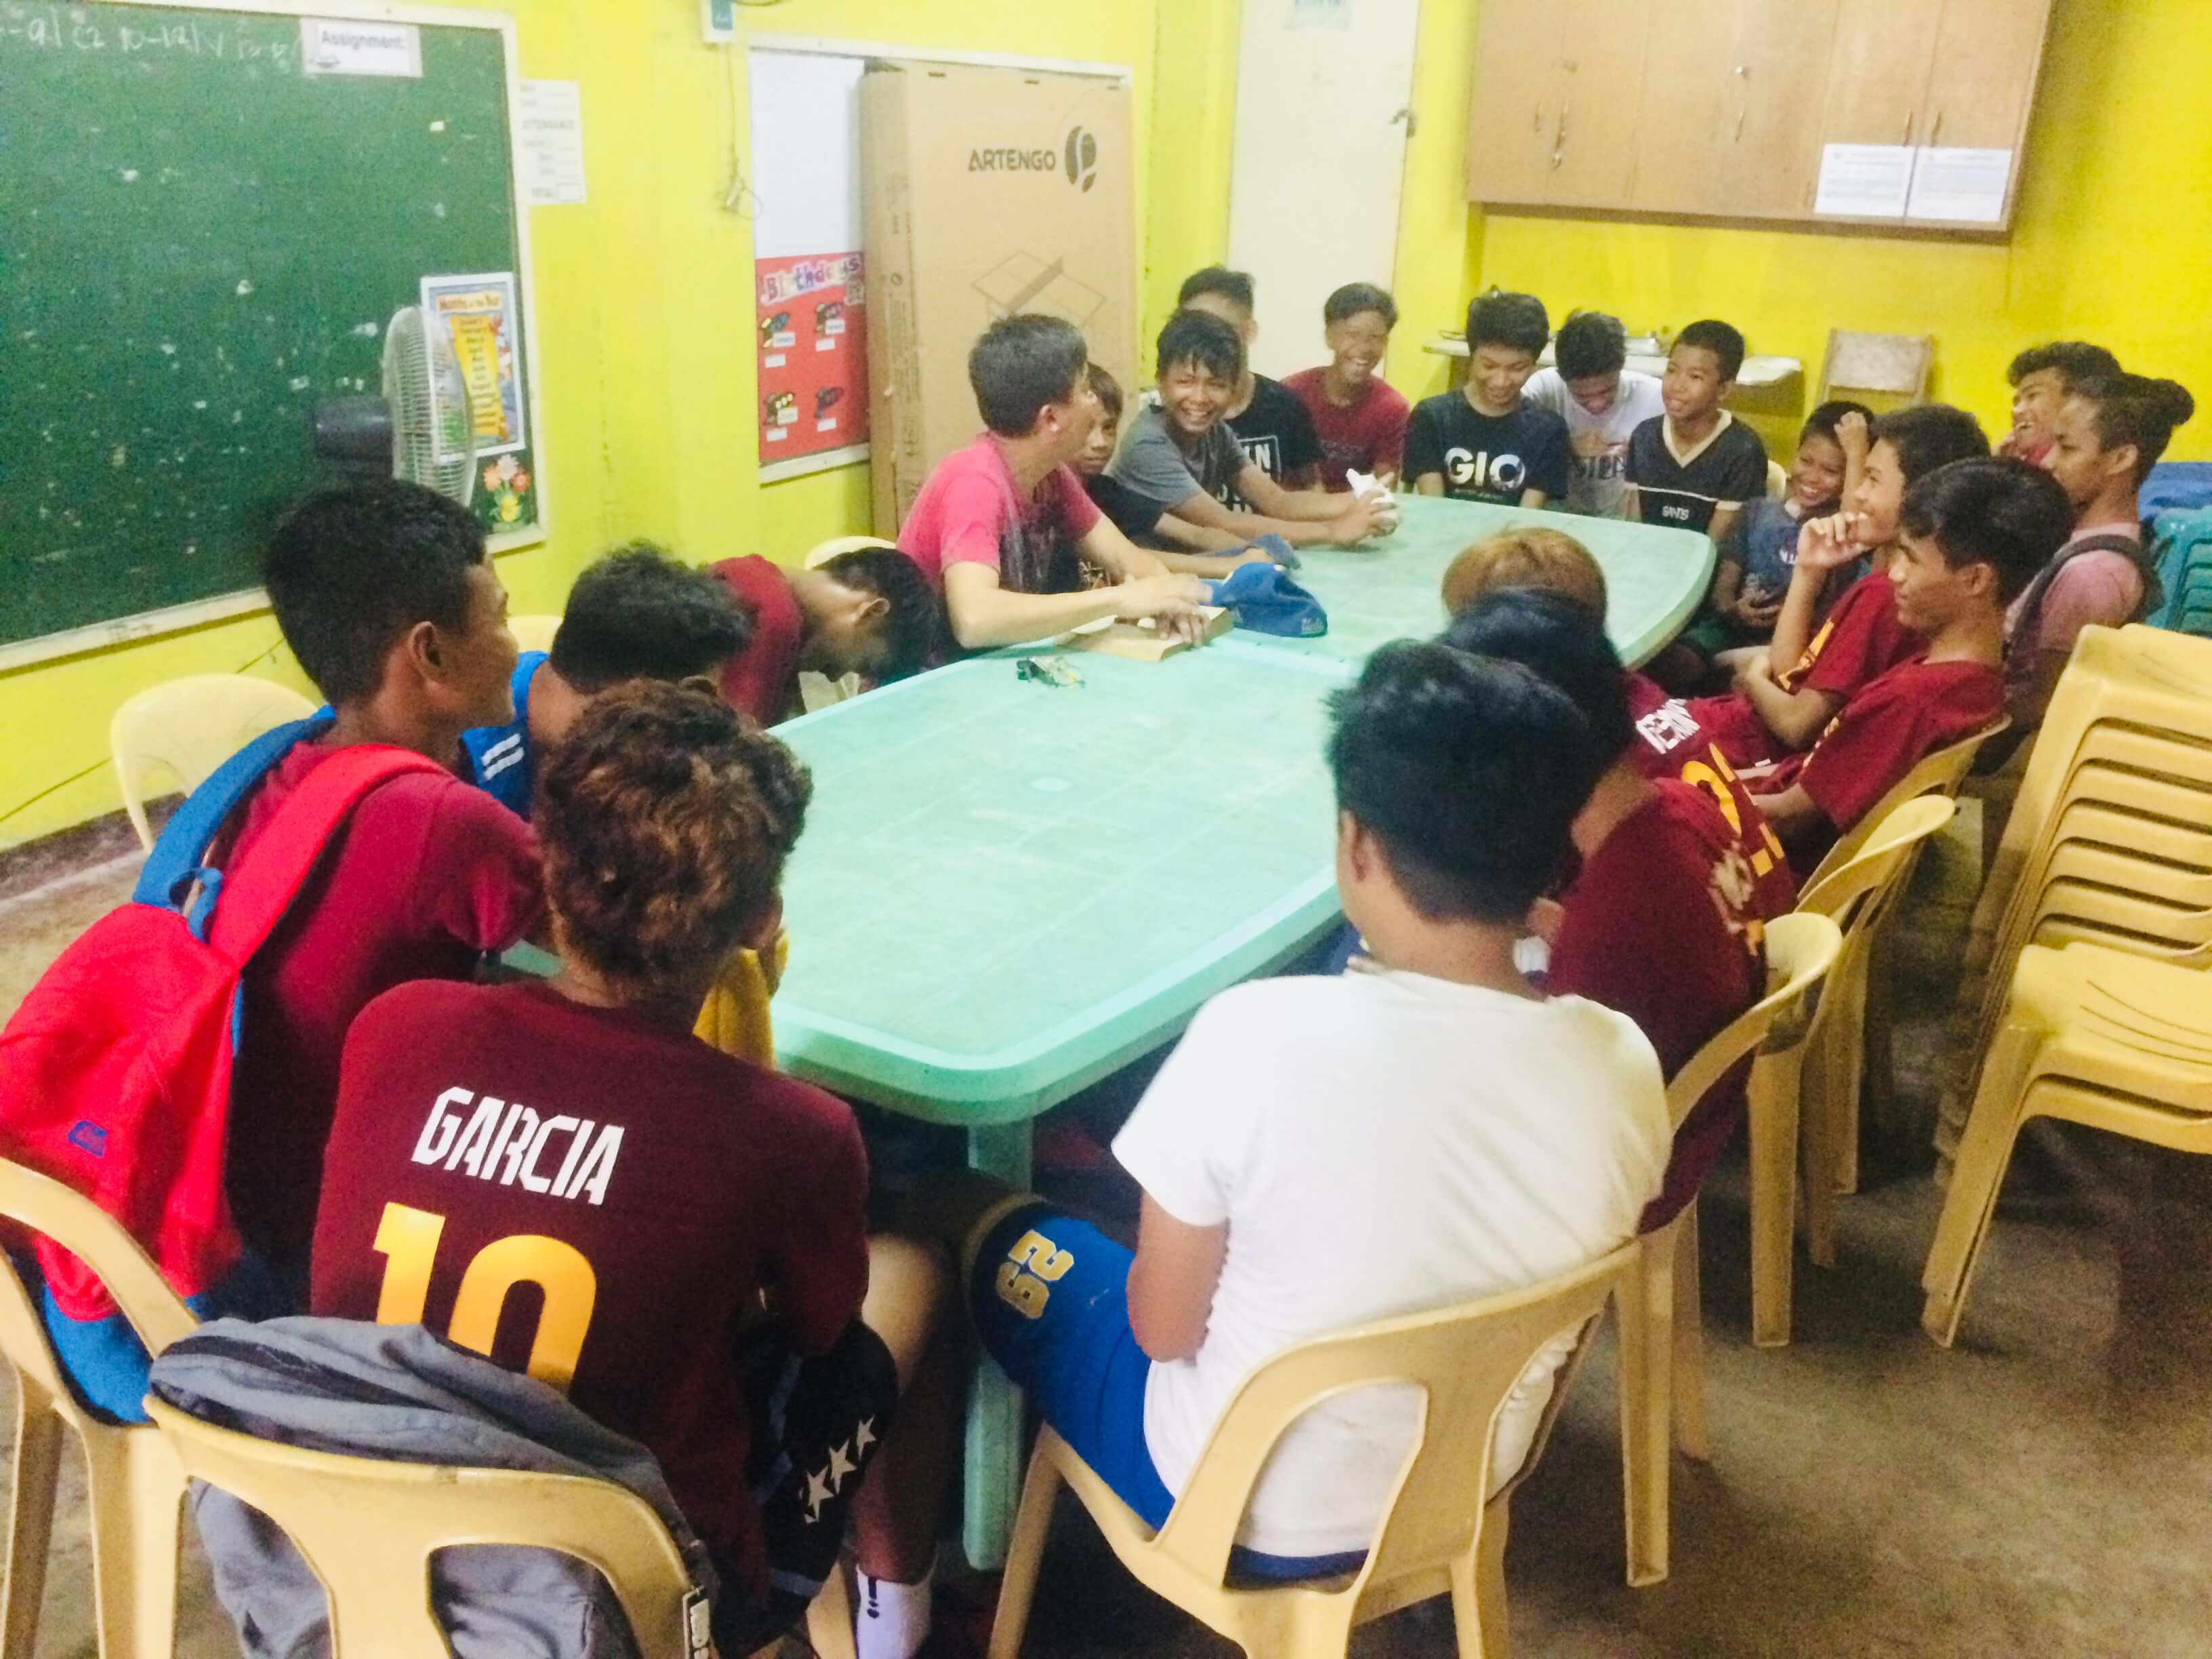 Bible Basketball League Team Devotion led by Bro. Yancy - May 1